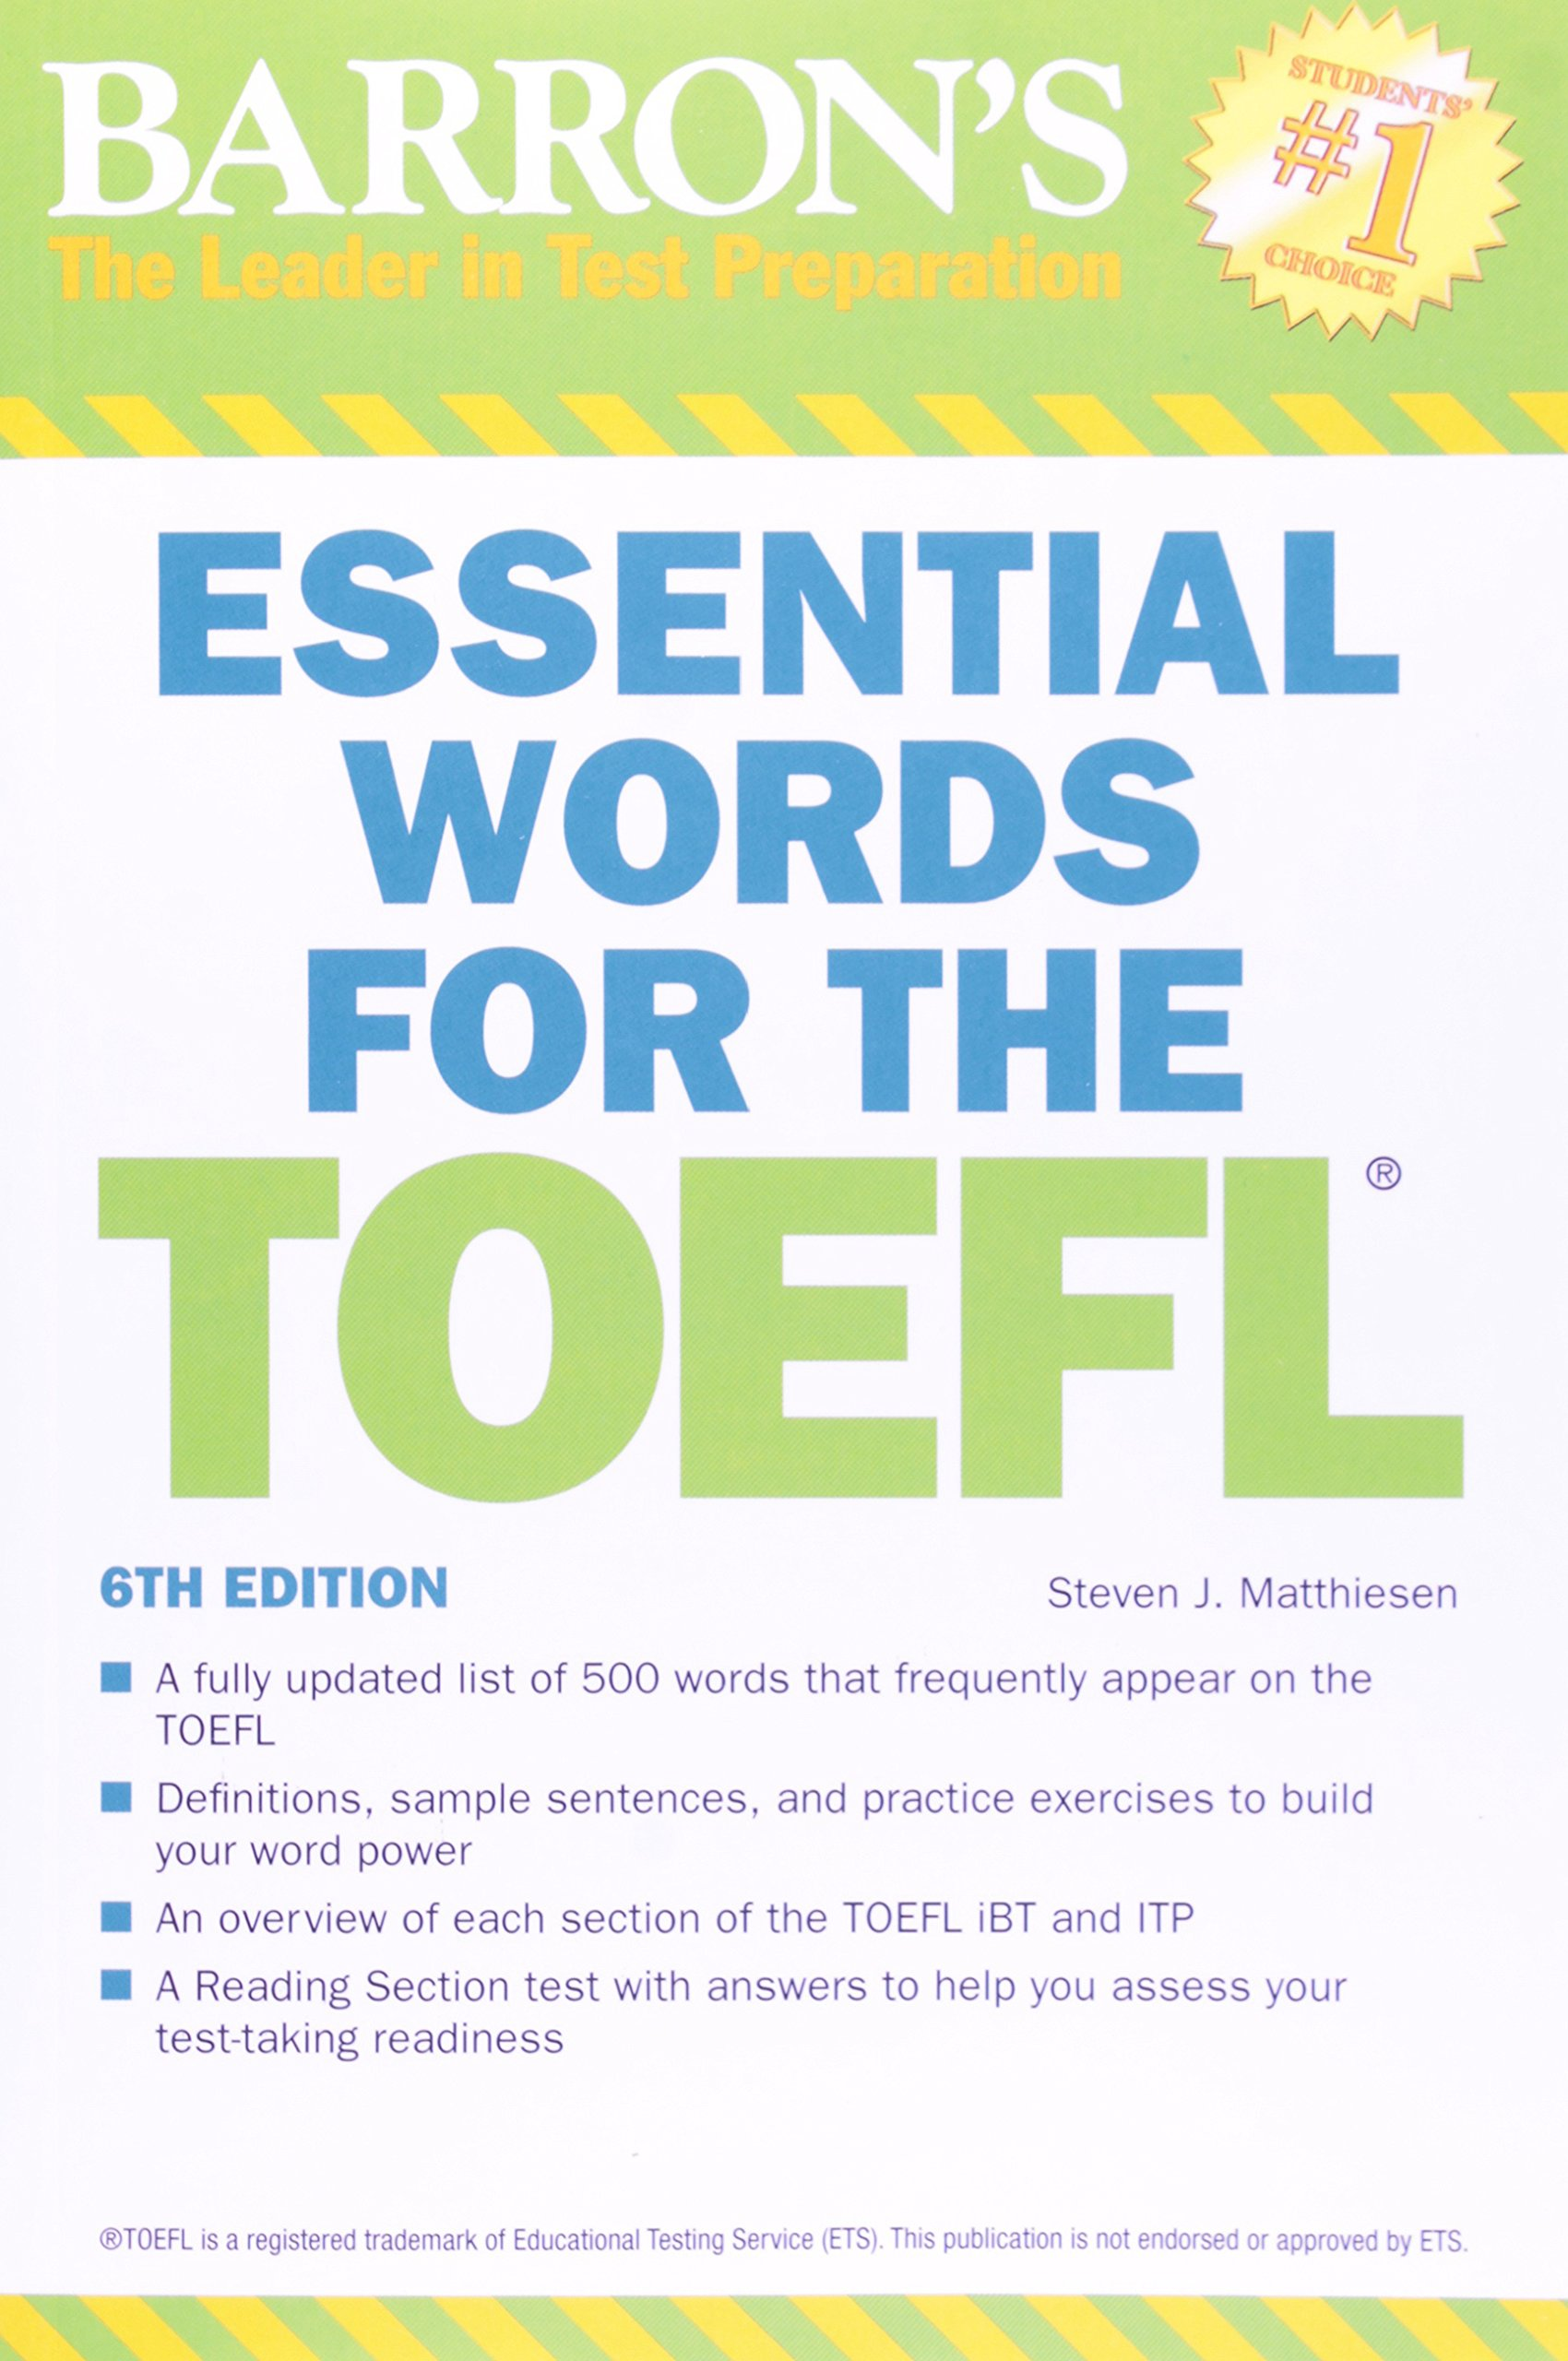 tofle essay Toefl reading practice testbig speed reading tools reading faster can help greatly to get a higher score toefl writing idols.